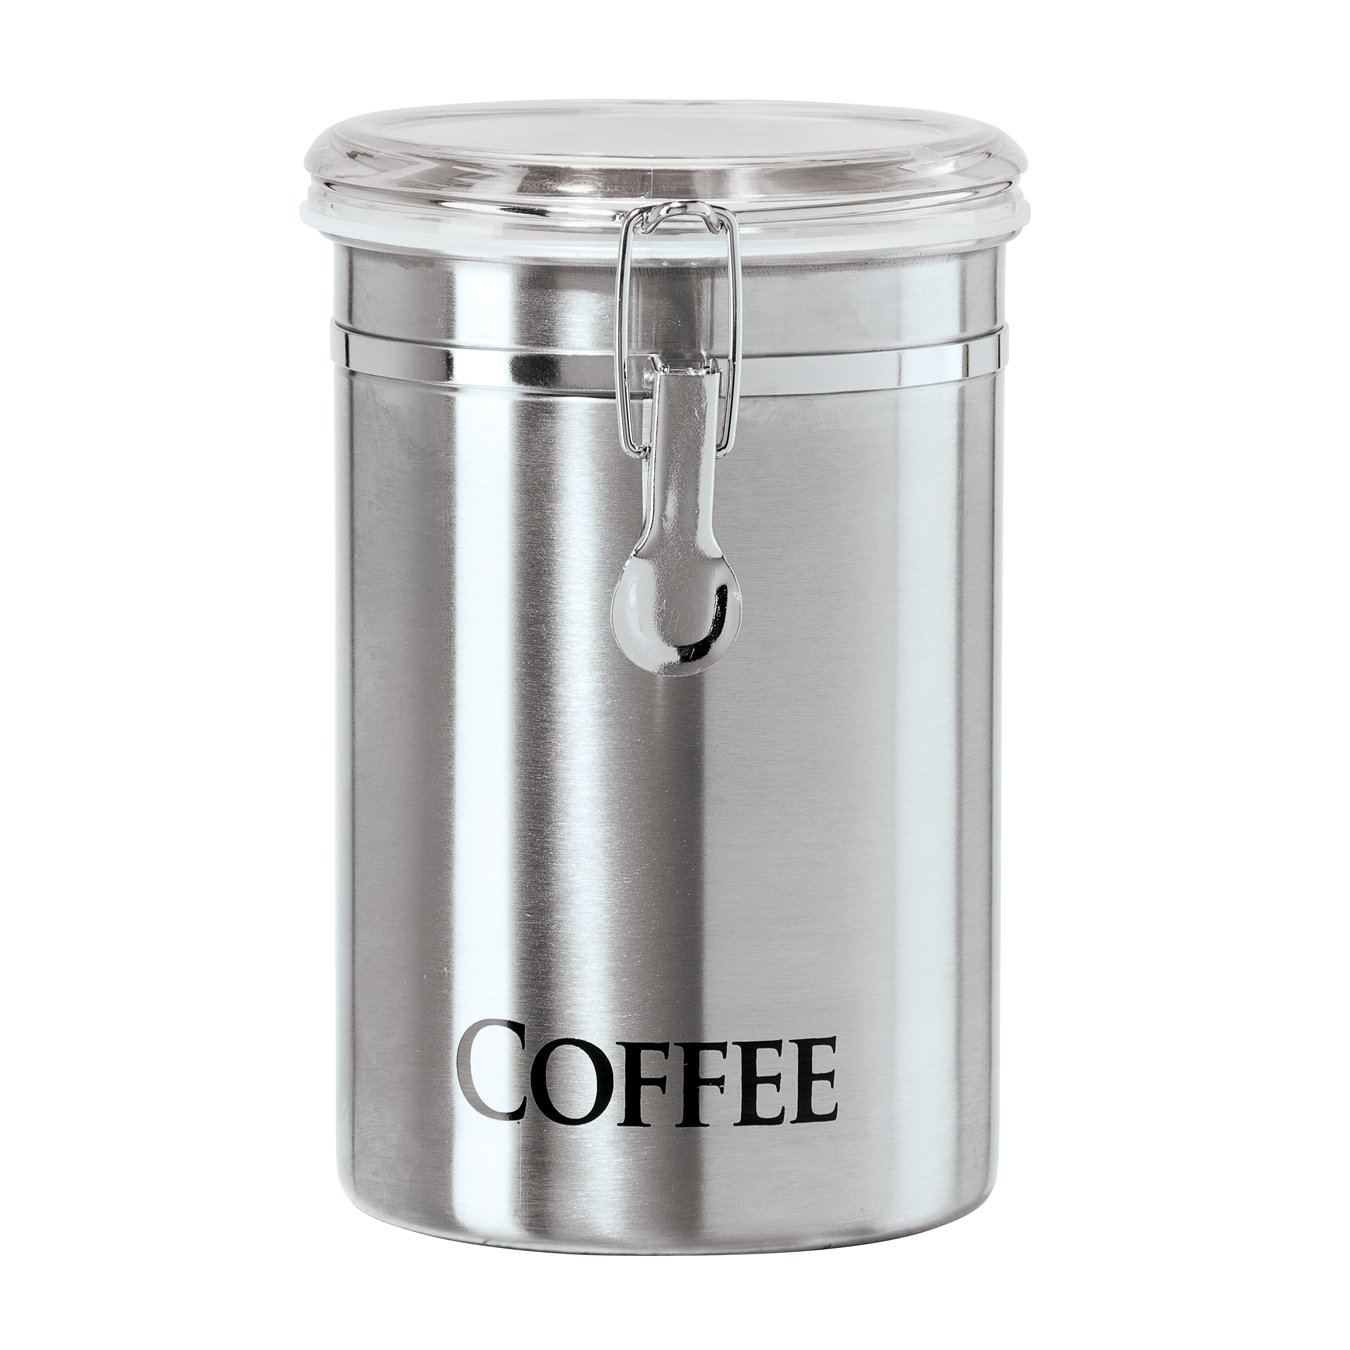 Oggi 62-Ounce Brushed Stainless Steel ''Coffee'' Airtight Canister with Acrylic Lid